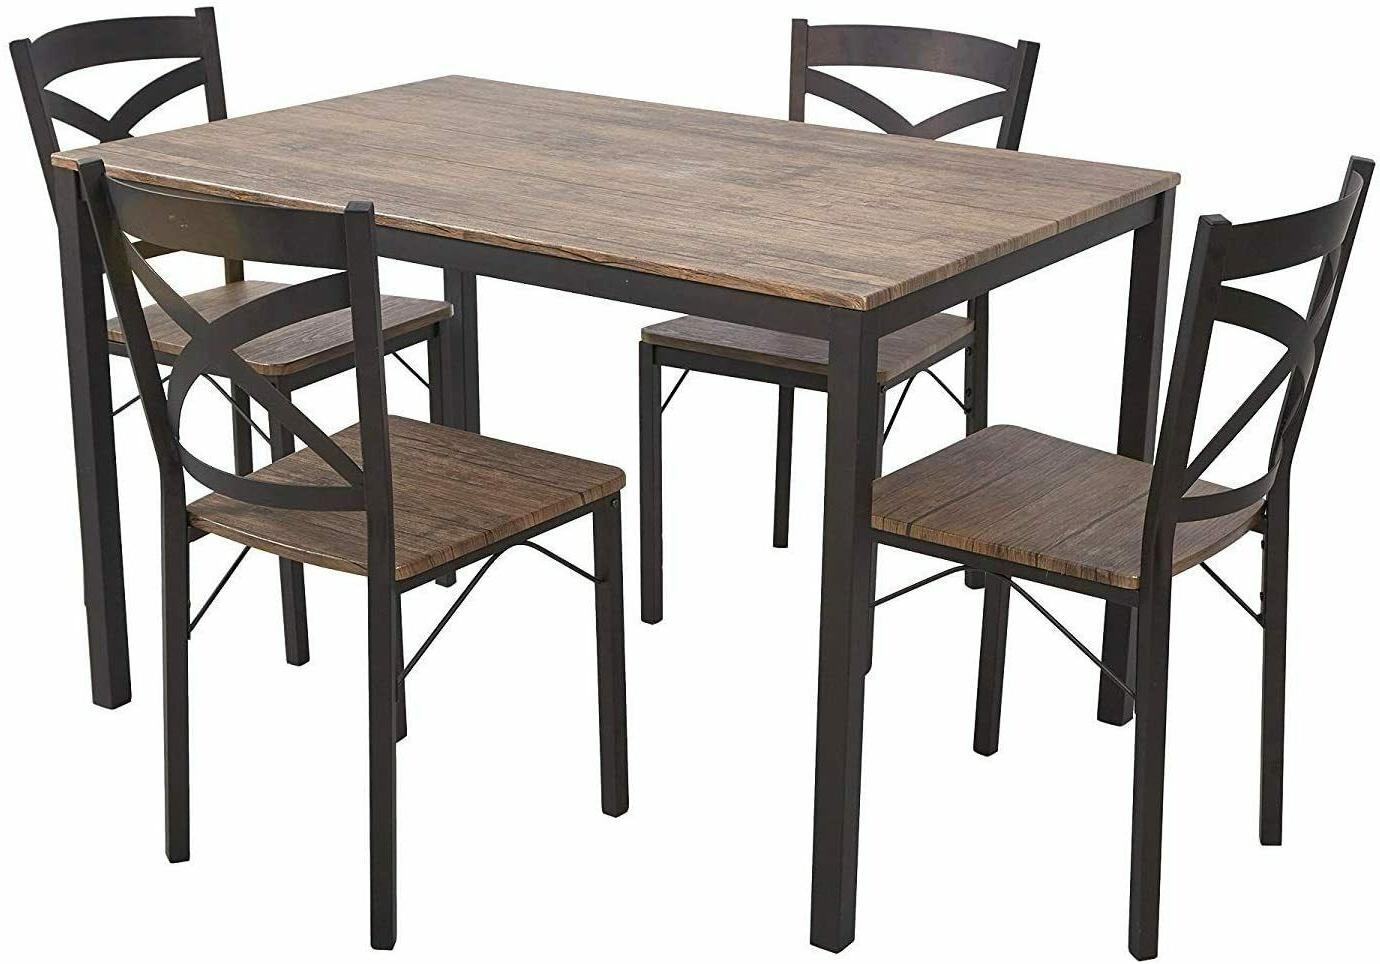 5-Piece Style Wooden and Chairs, Espresso